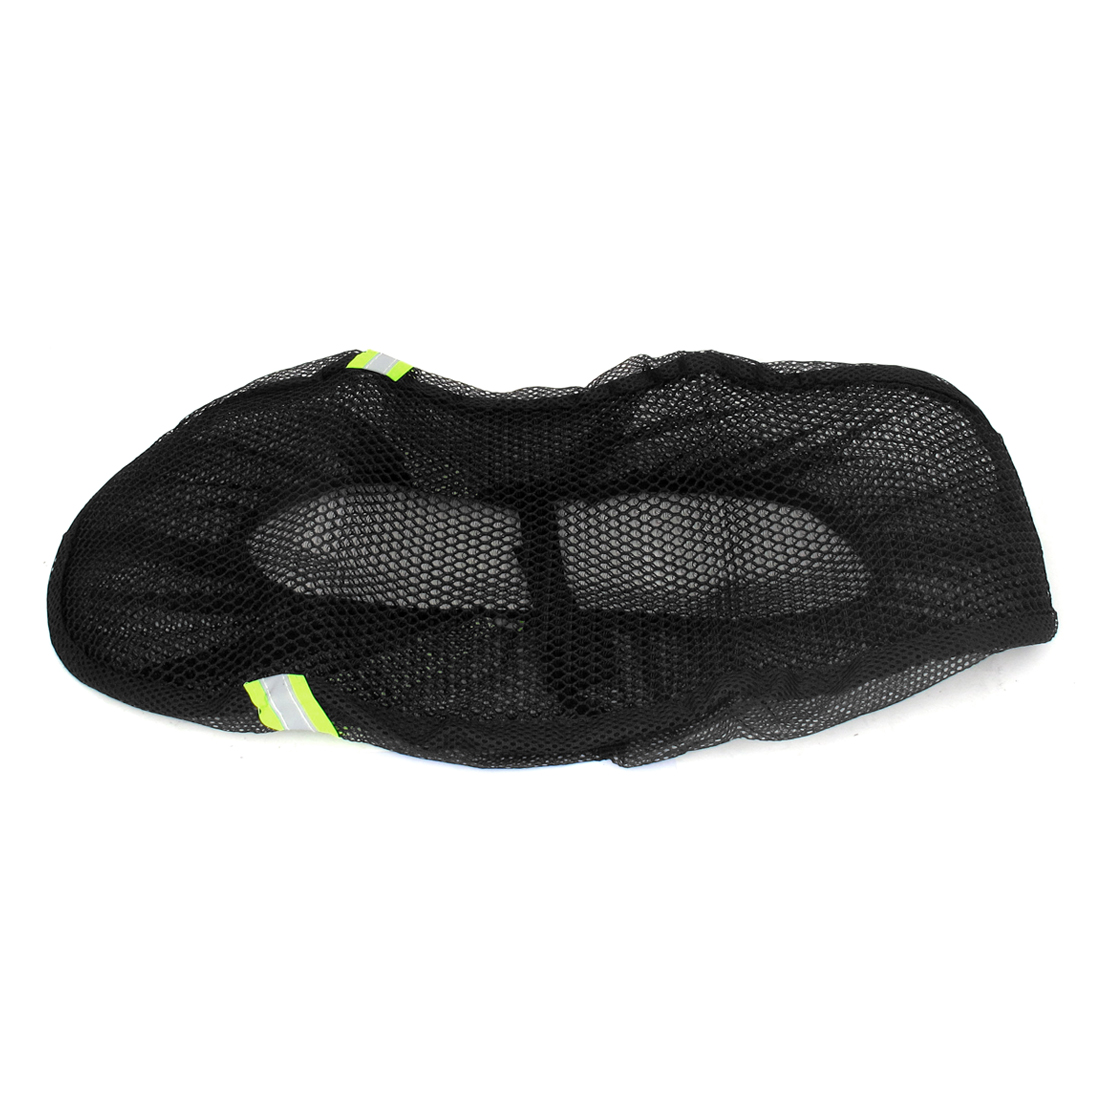 Green Reflections Motorcycle Mesh Design Hot Resistance Seat Cushion Cover for CN GN